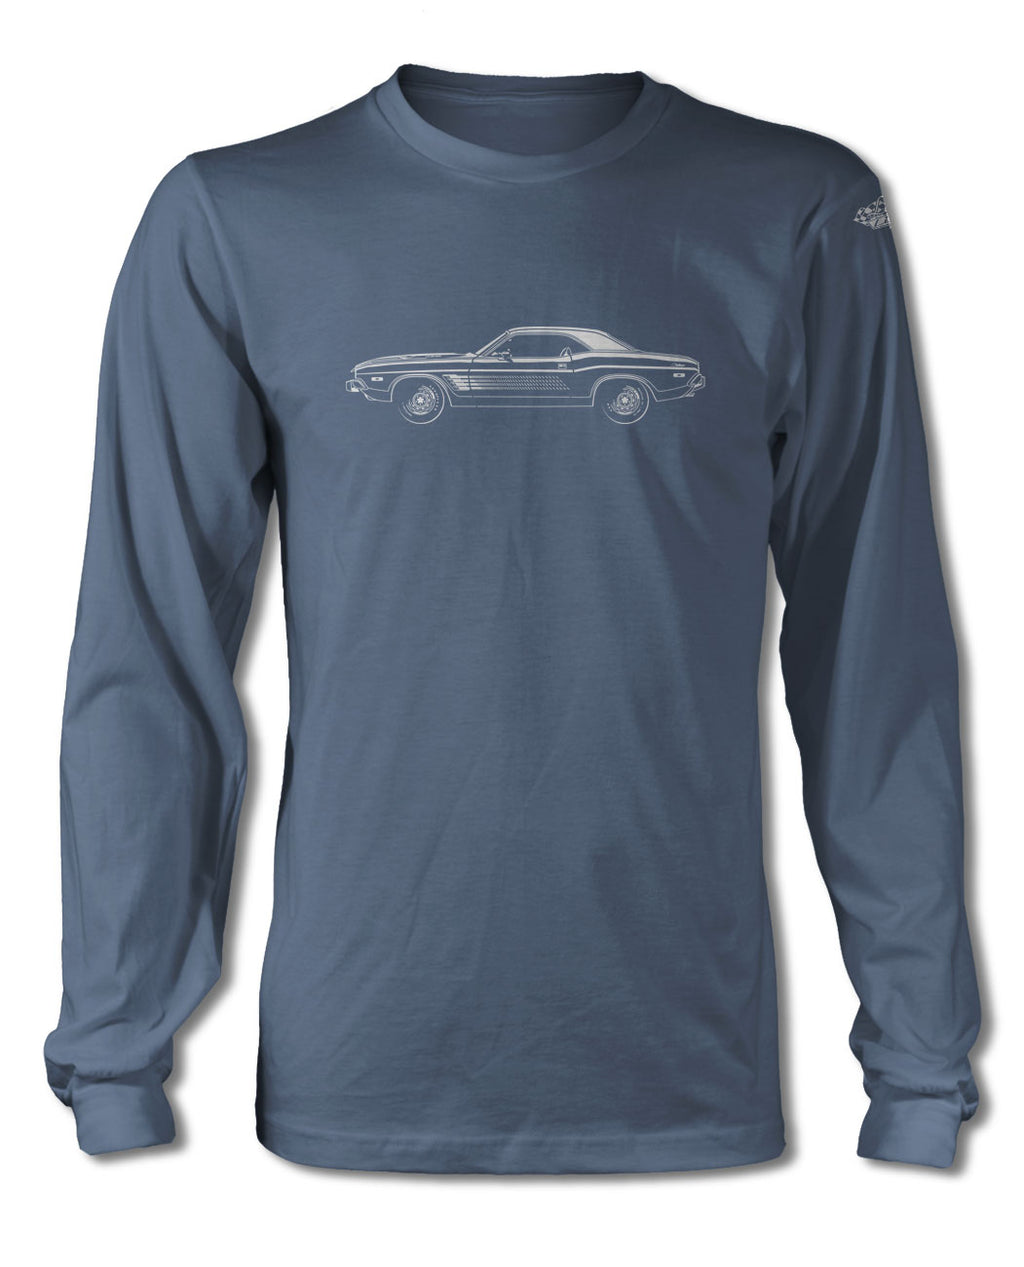 1973 Dodge Challenger Rallye with Stripes Hardtop T-Shirt - Long Sleeves - Side View